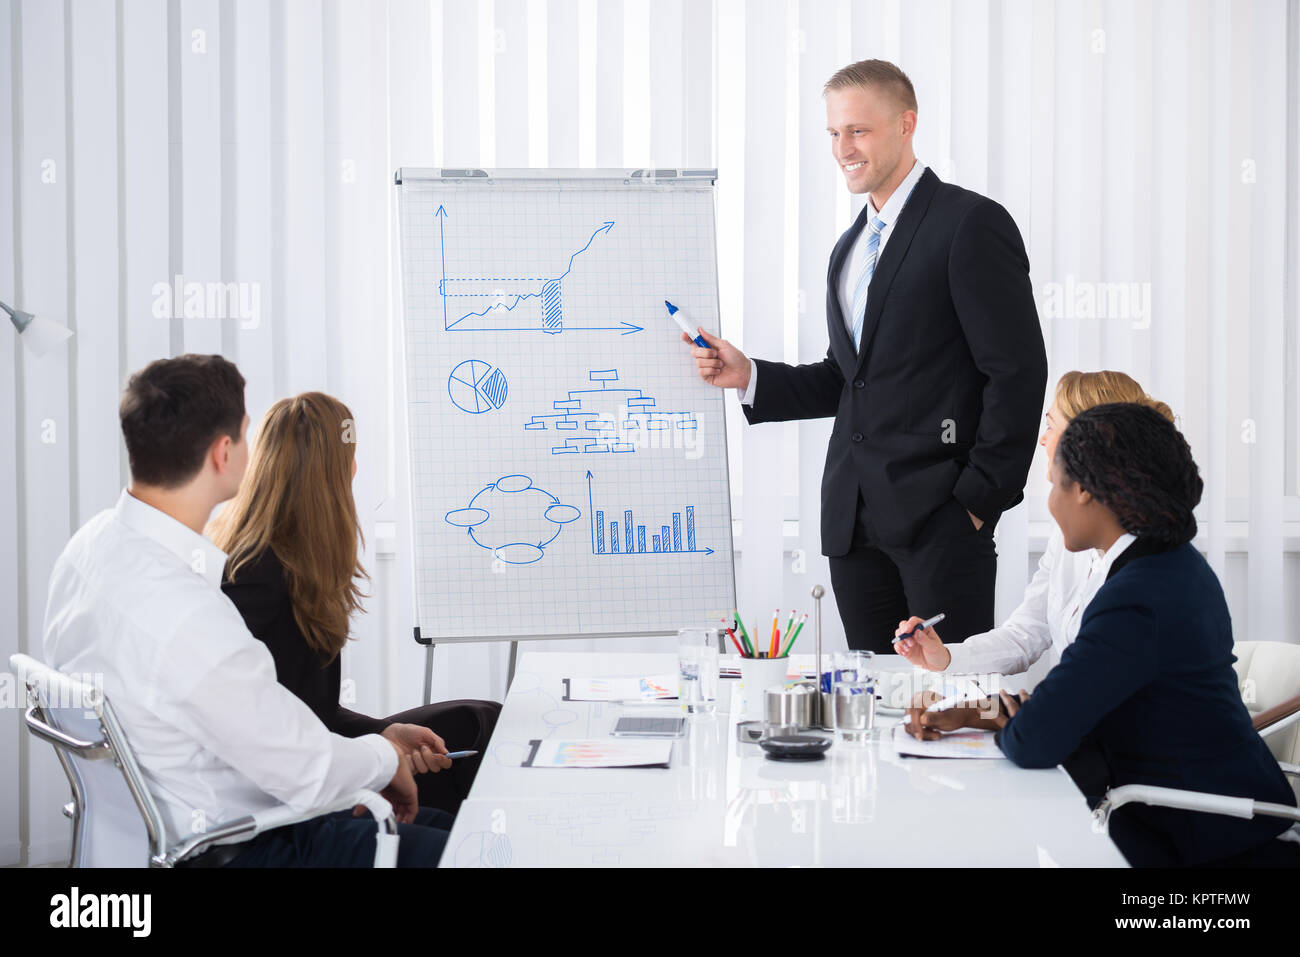 Businessman Giving Presentation To Businesspeople - Stock Image